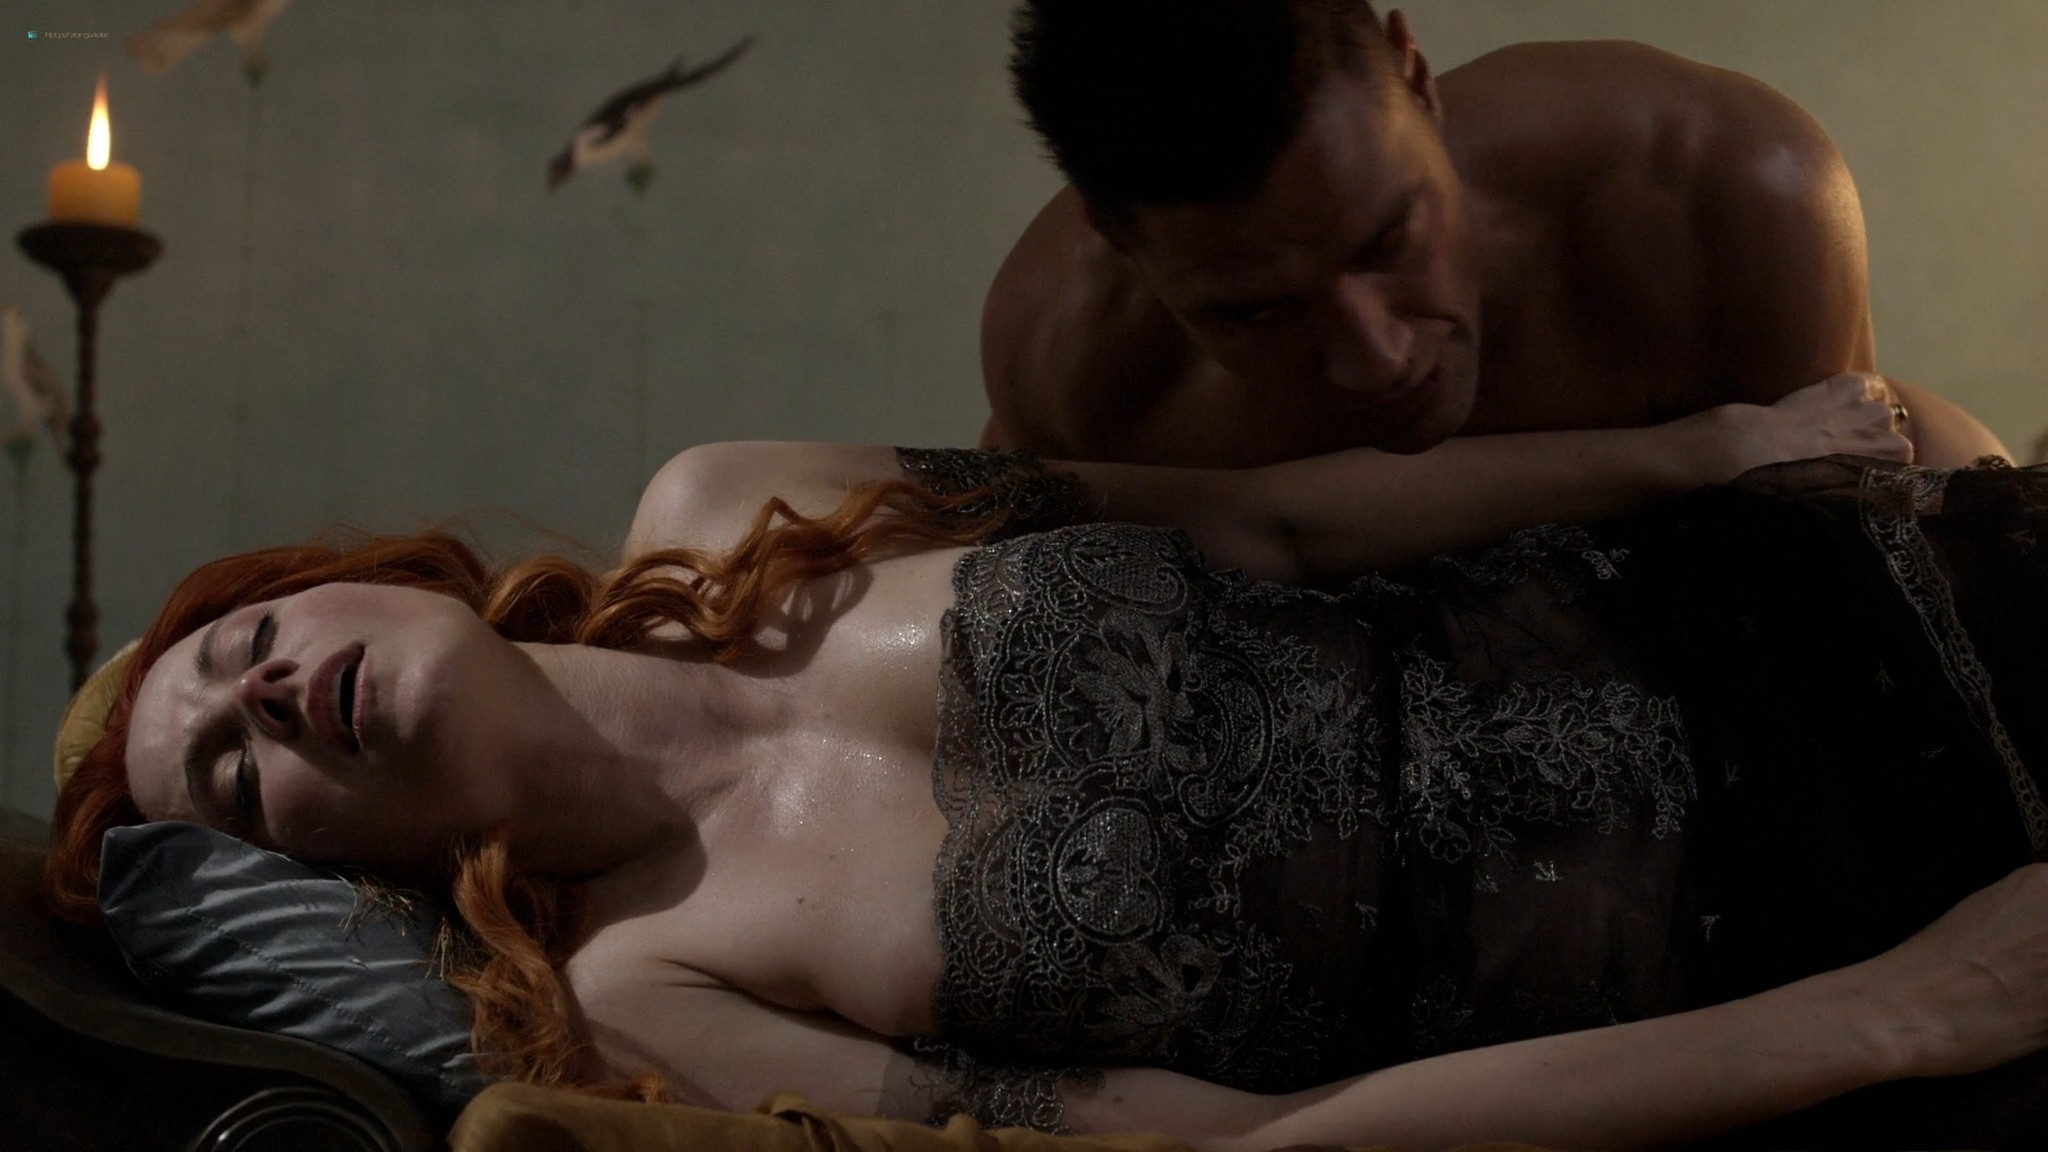 Lucy Lawless nude Katrina Law full-frontal Viva Bianca, etc nude - Spartacus (2010) Whore s1e9 HD 1080p BluRay (9)